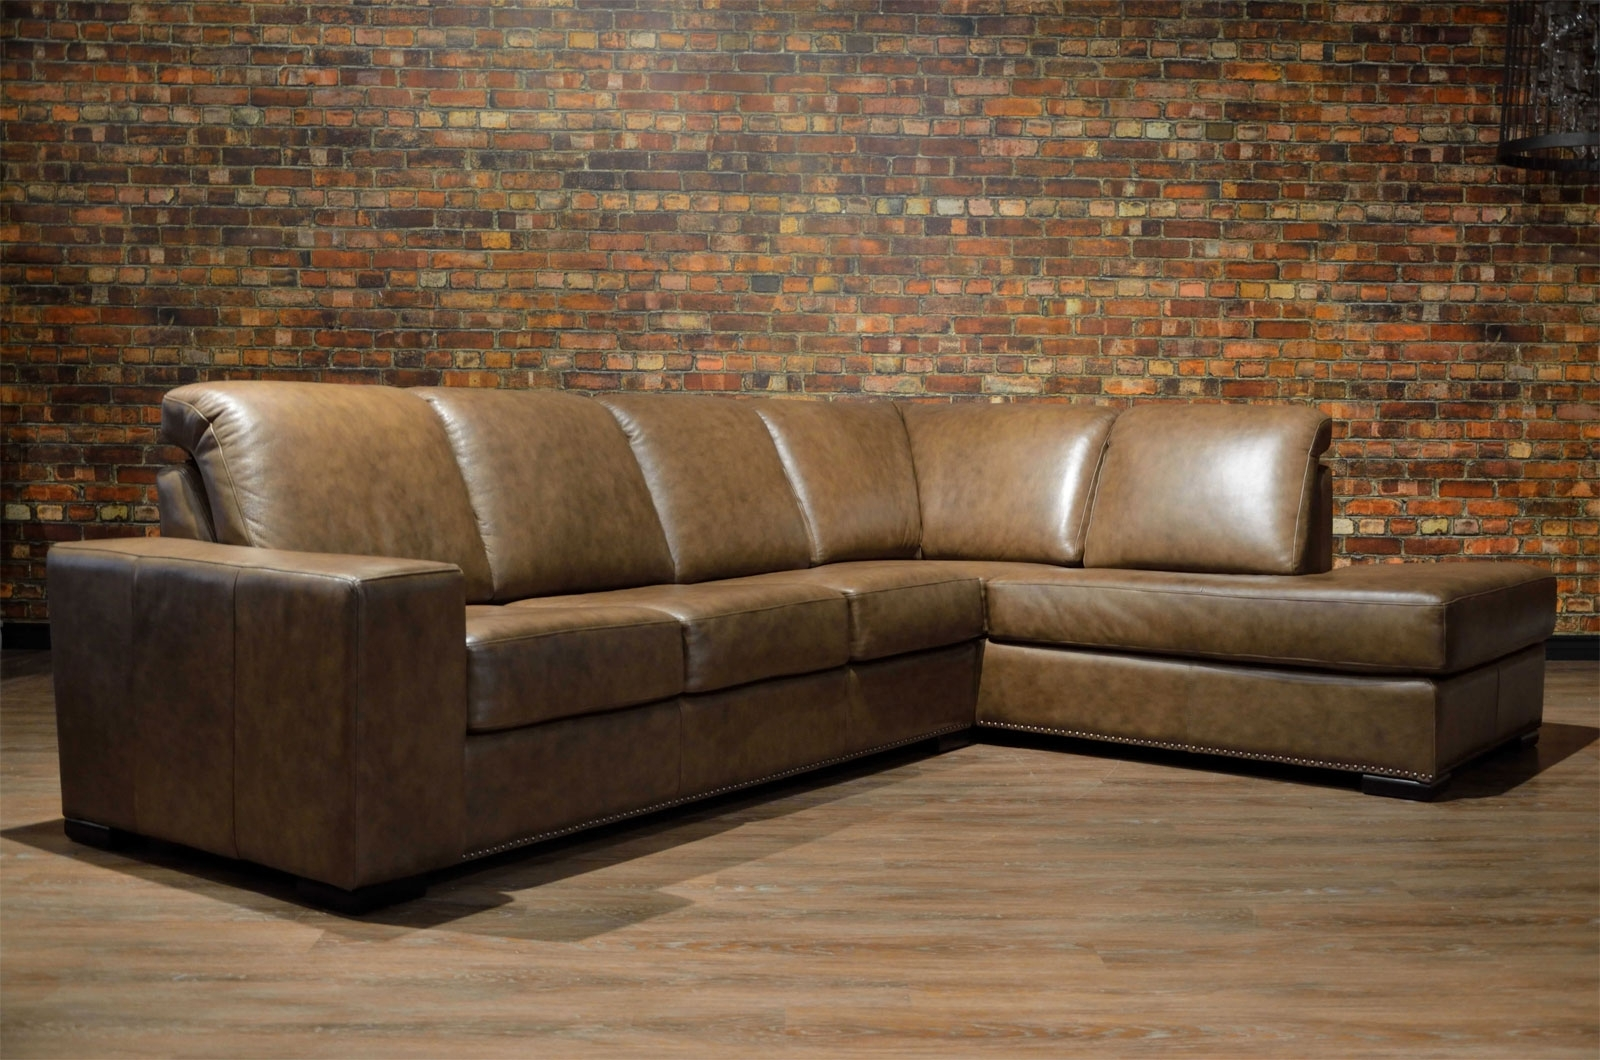 Leather Sofa & Sectional – Choose Color, Leather & Size | Boss Regarding Ontario Canada Sectional Sofas (View 9 of 10)